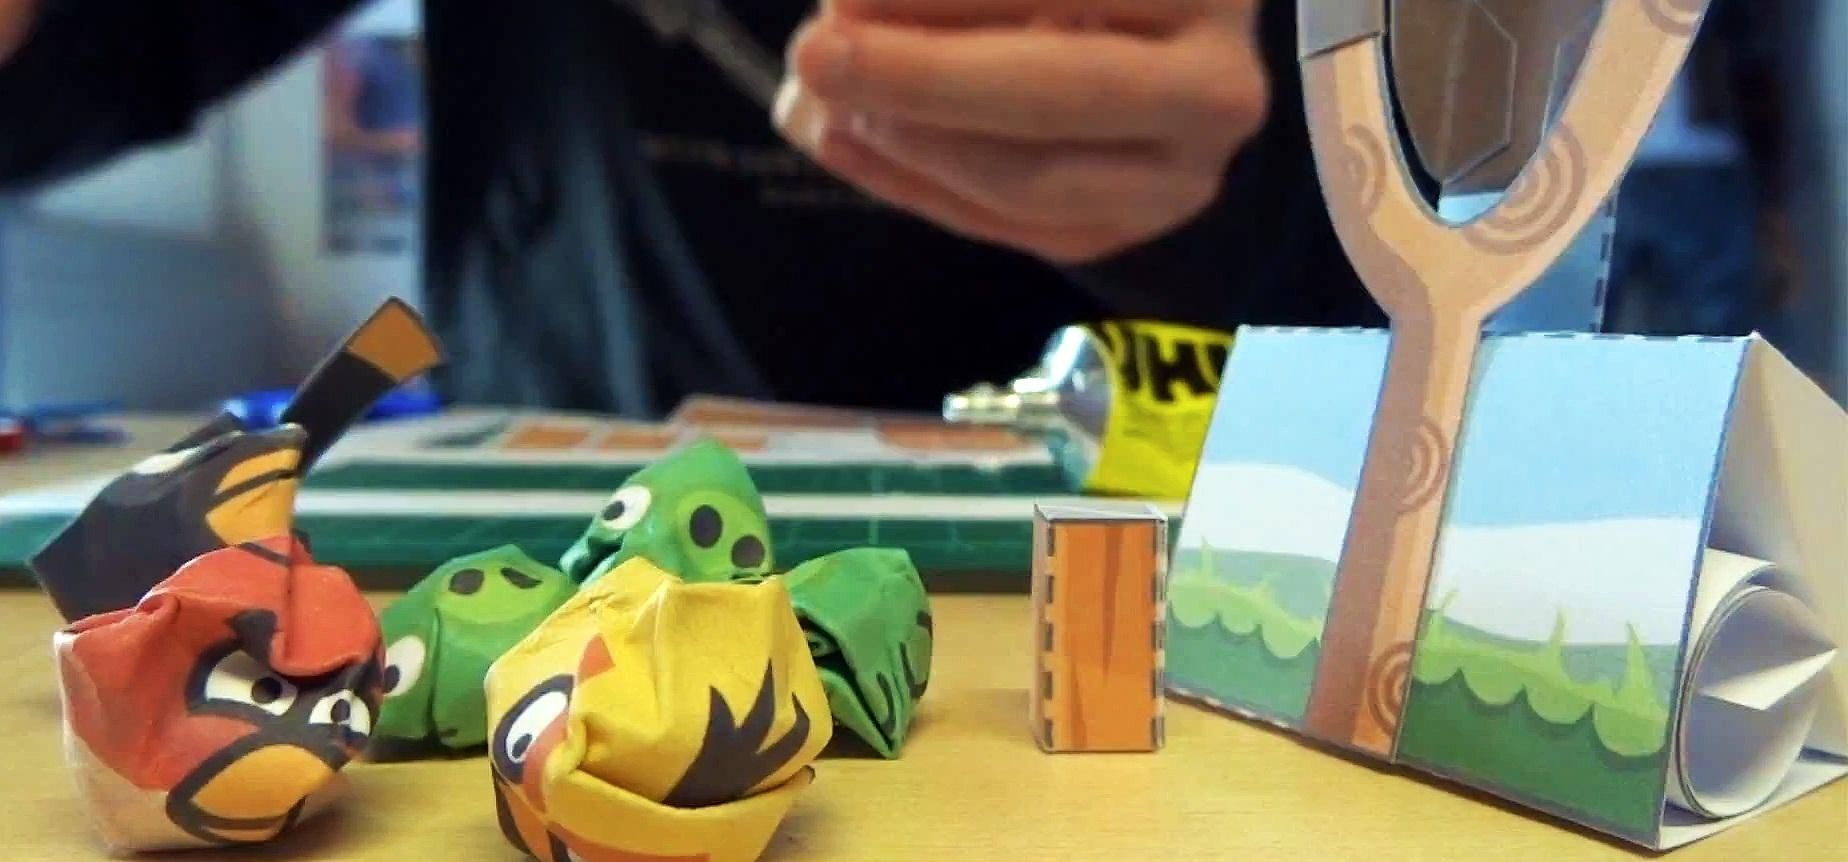 How to Make Your Own Playable Papercraft Version of Angry